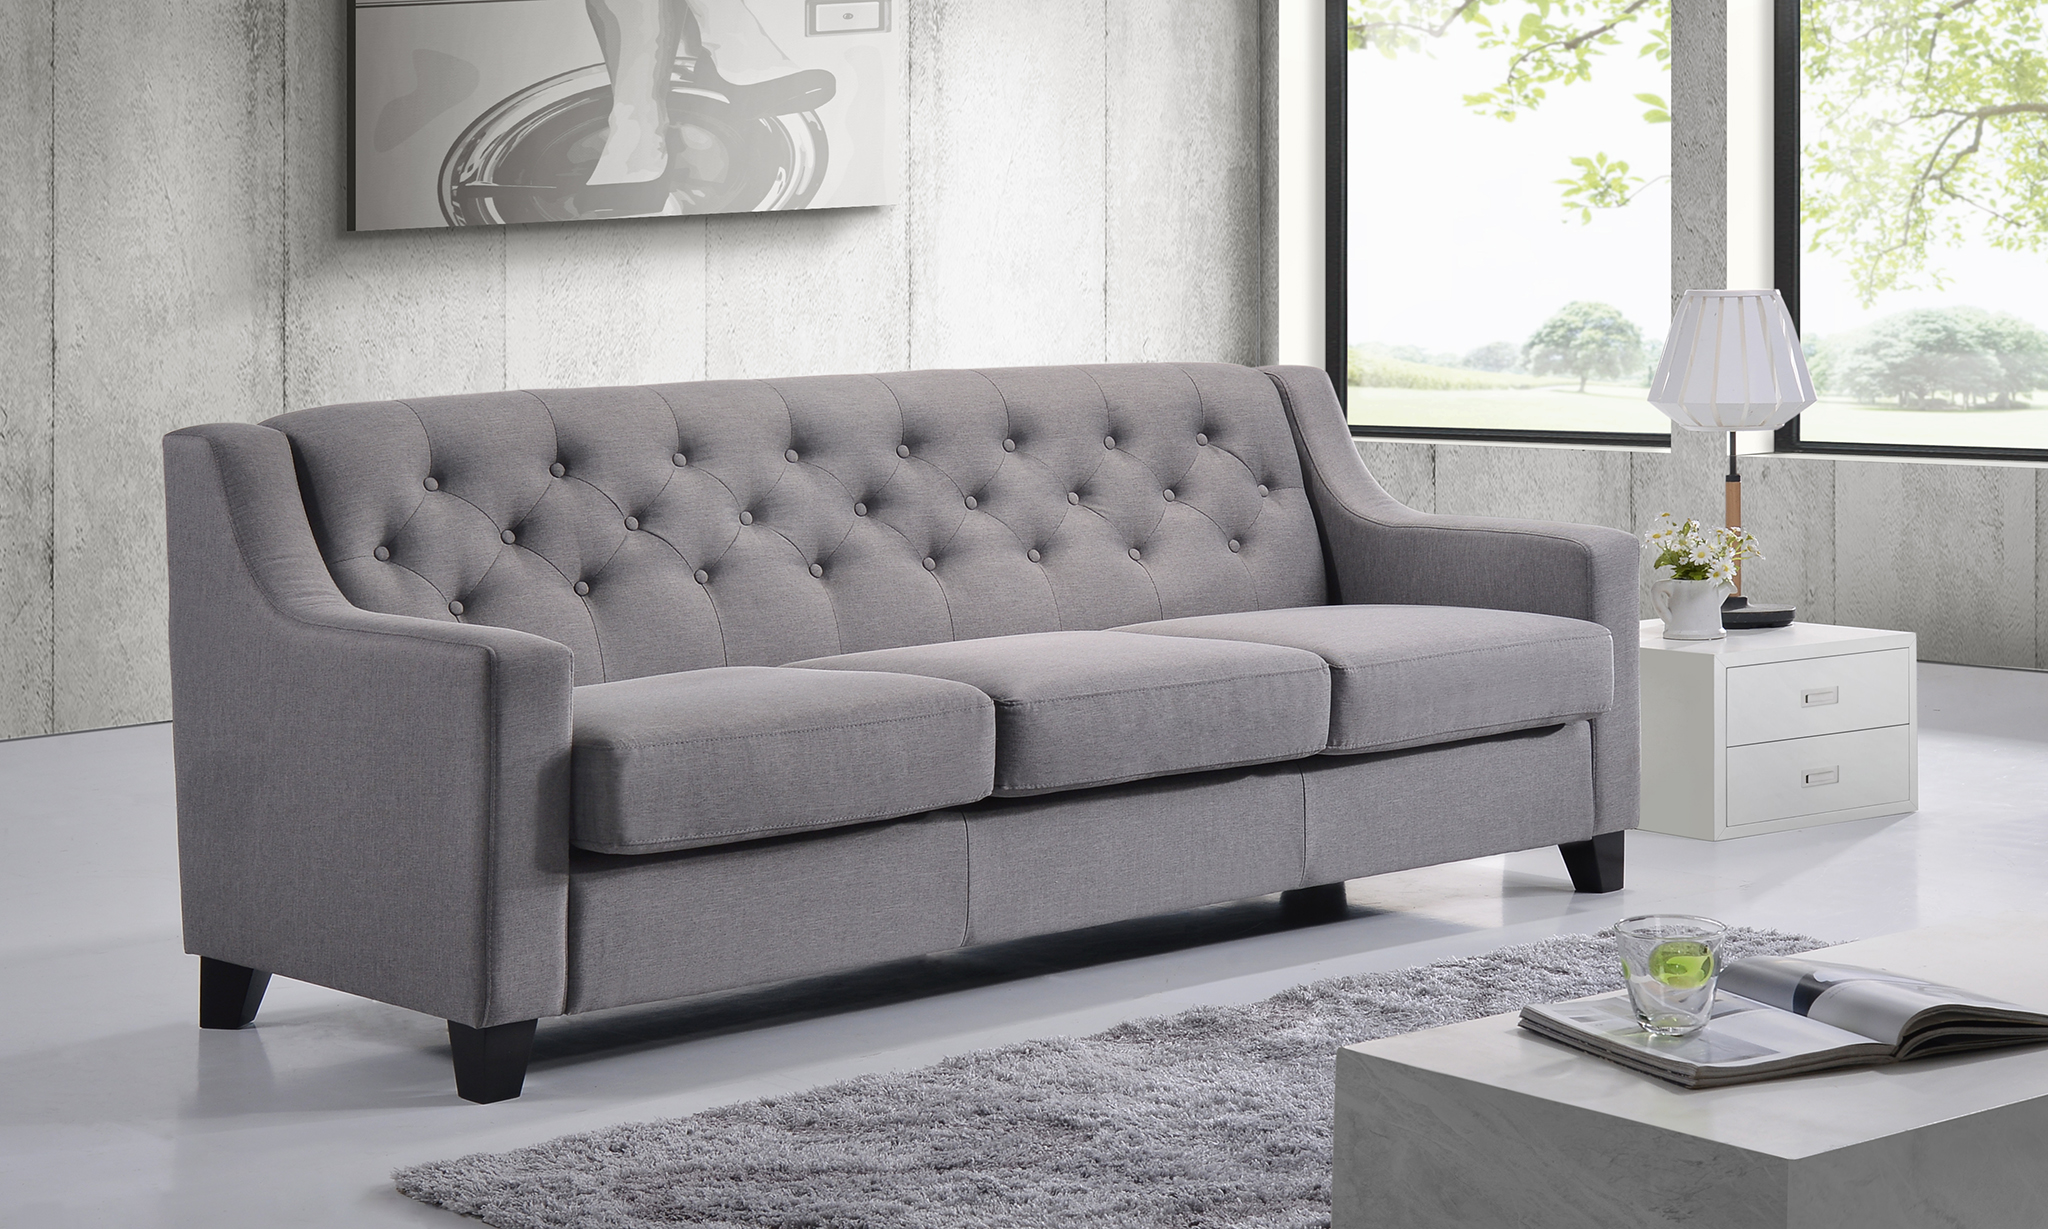 tomas fabric sofa chaise convertible bed dark java phoenix large recliner chocolate natuzzi 3 seater sofas arnotts find it at shopwiki arcadia upholstered tufted gray